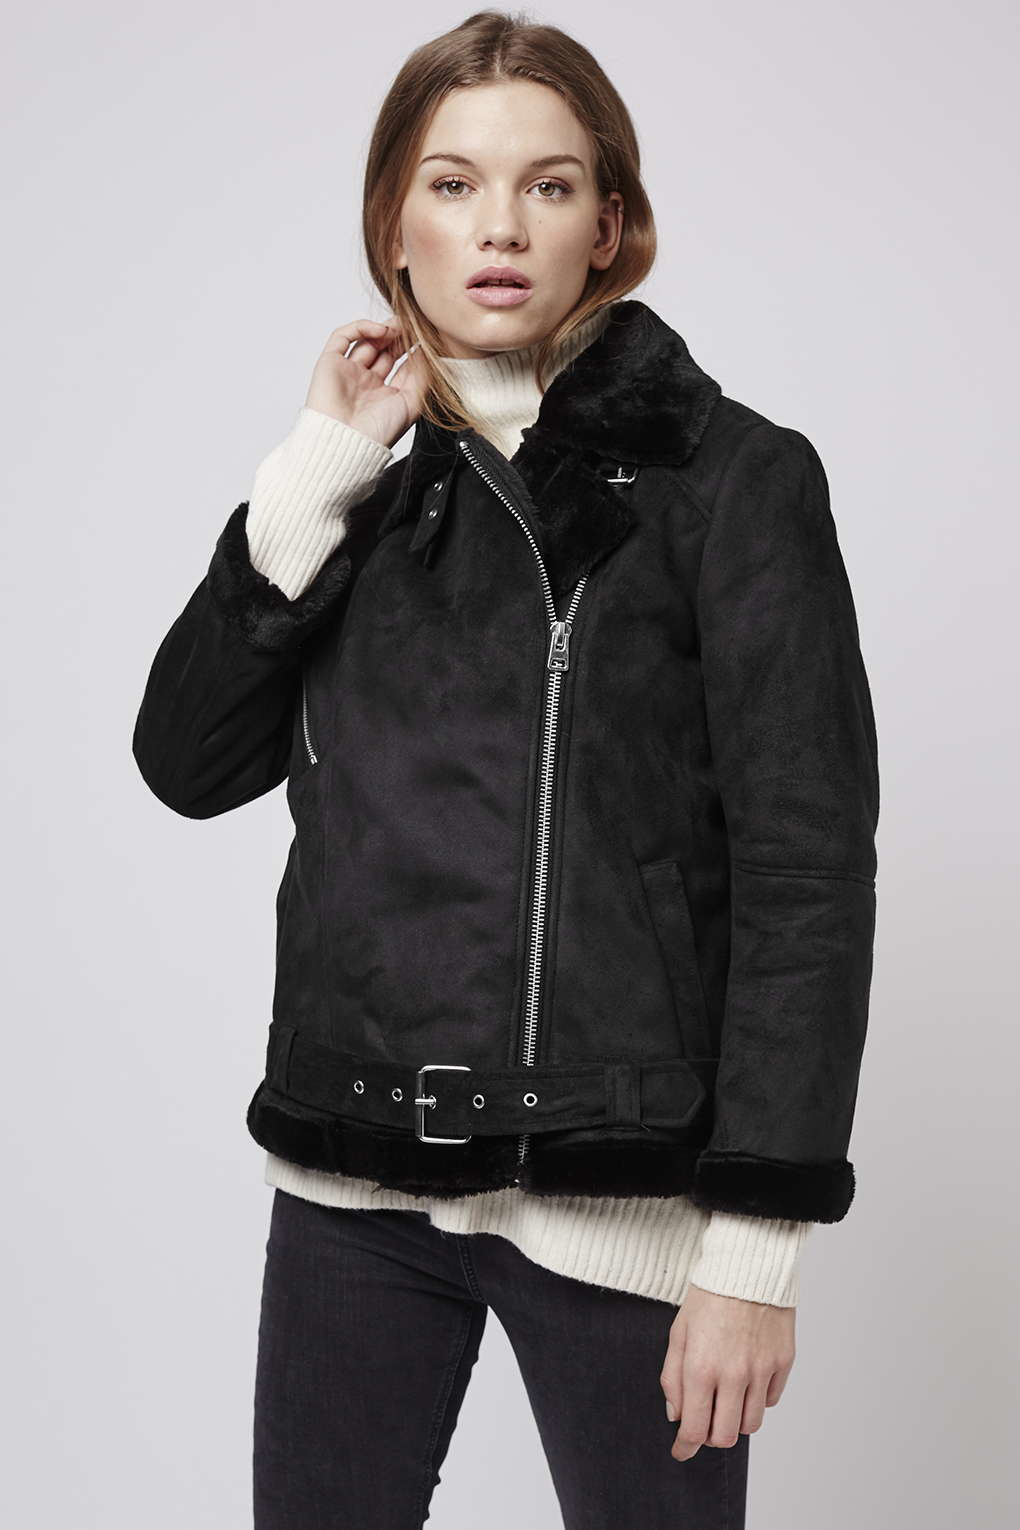 Topshop Petite Faux Fur Aviator Jacket in Black | Lyst